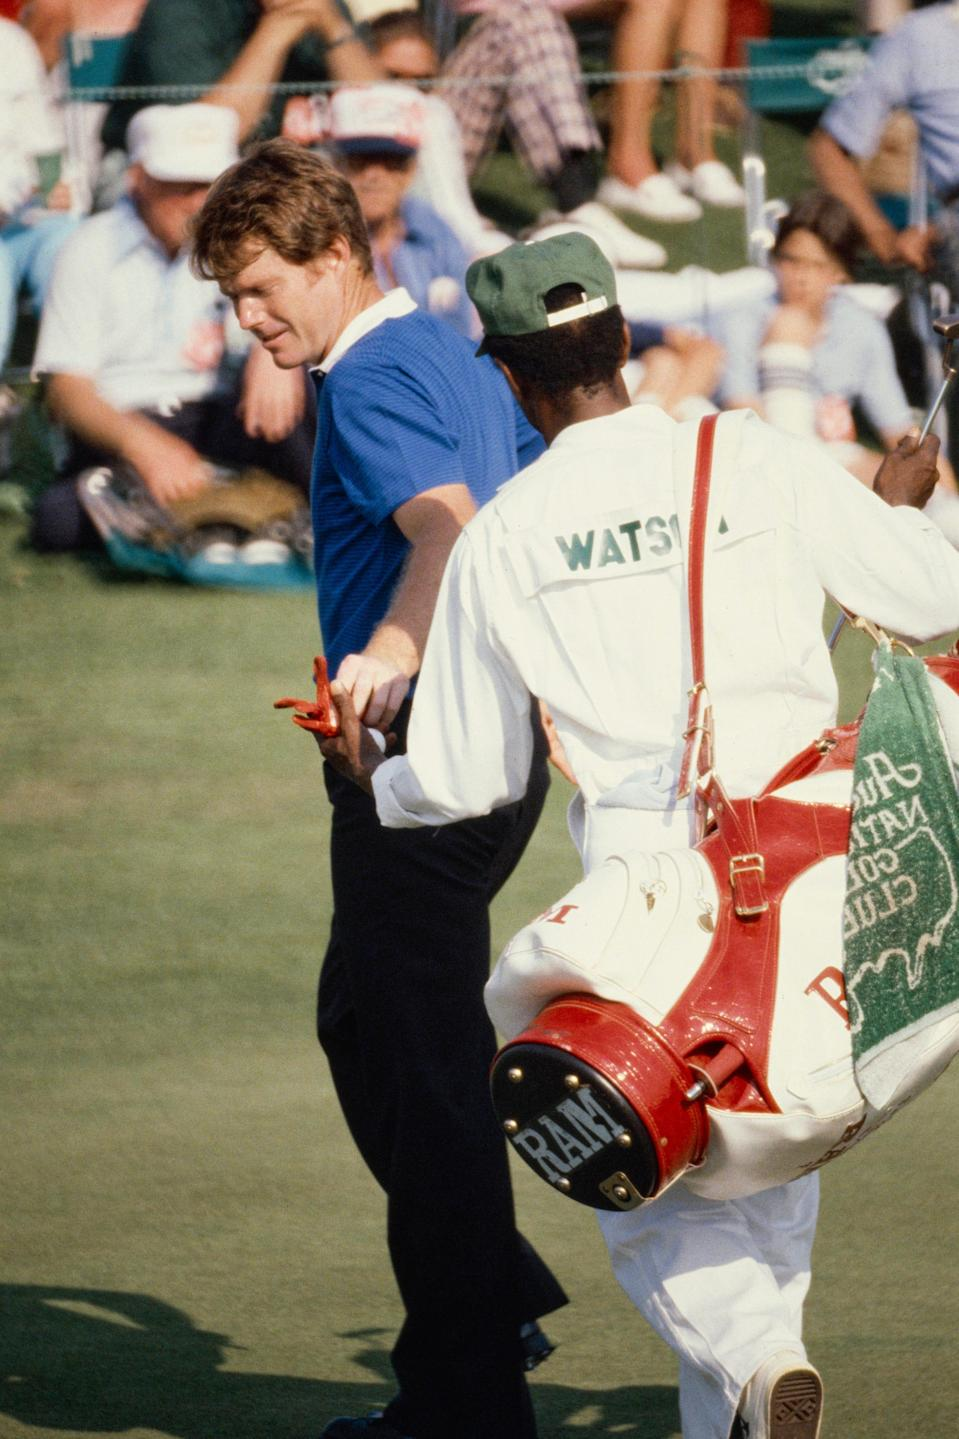 Tom Watson hands off his ball to his caddie at Augusta National on Friday, April 10, 1981.